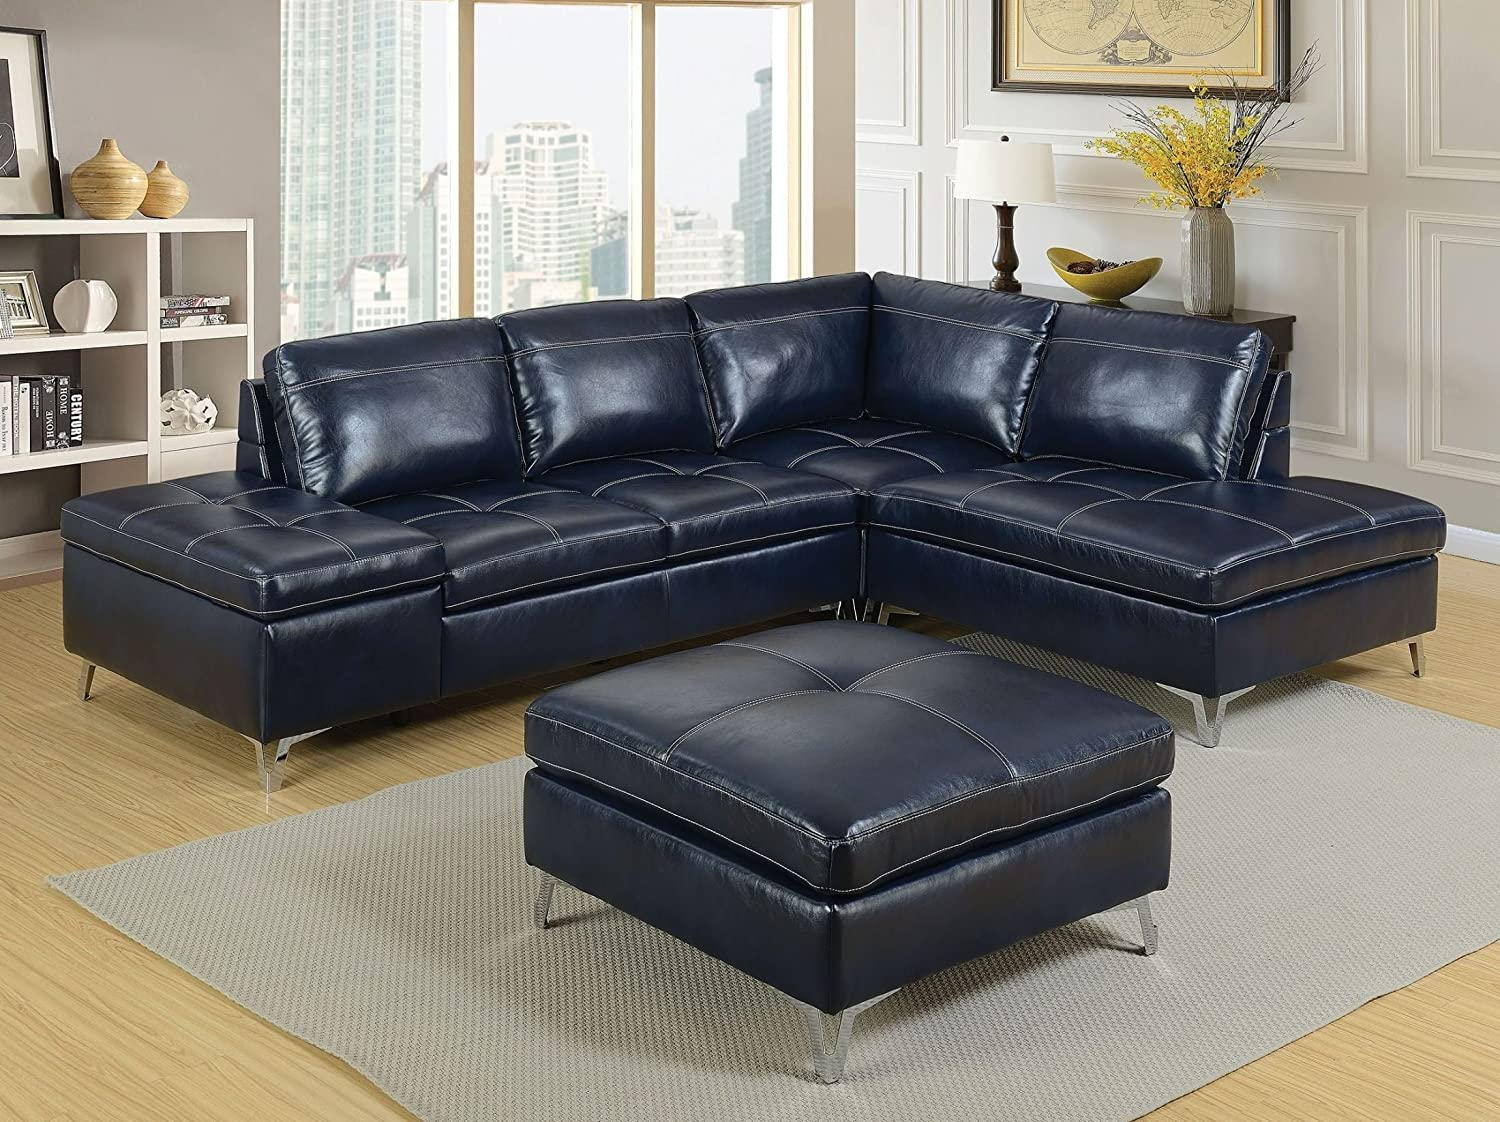 Amazon com esofastore contemporary sectional w ottoman leather gel dark blue tufted cushion chaise storage loveseat couch chrome legs living room